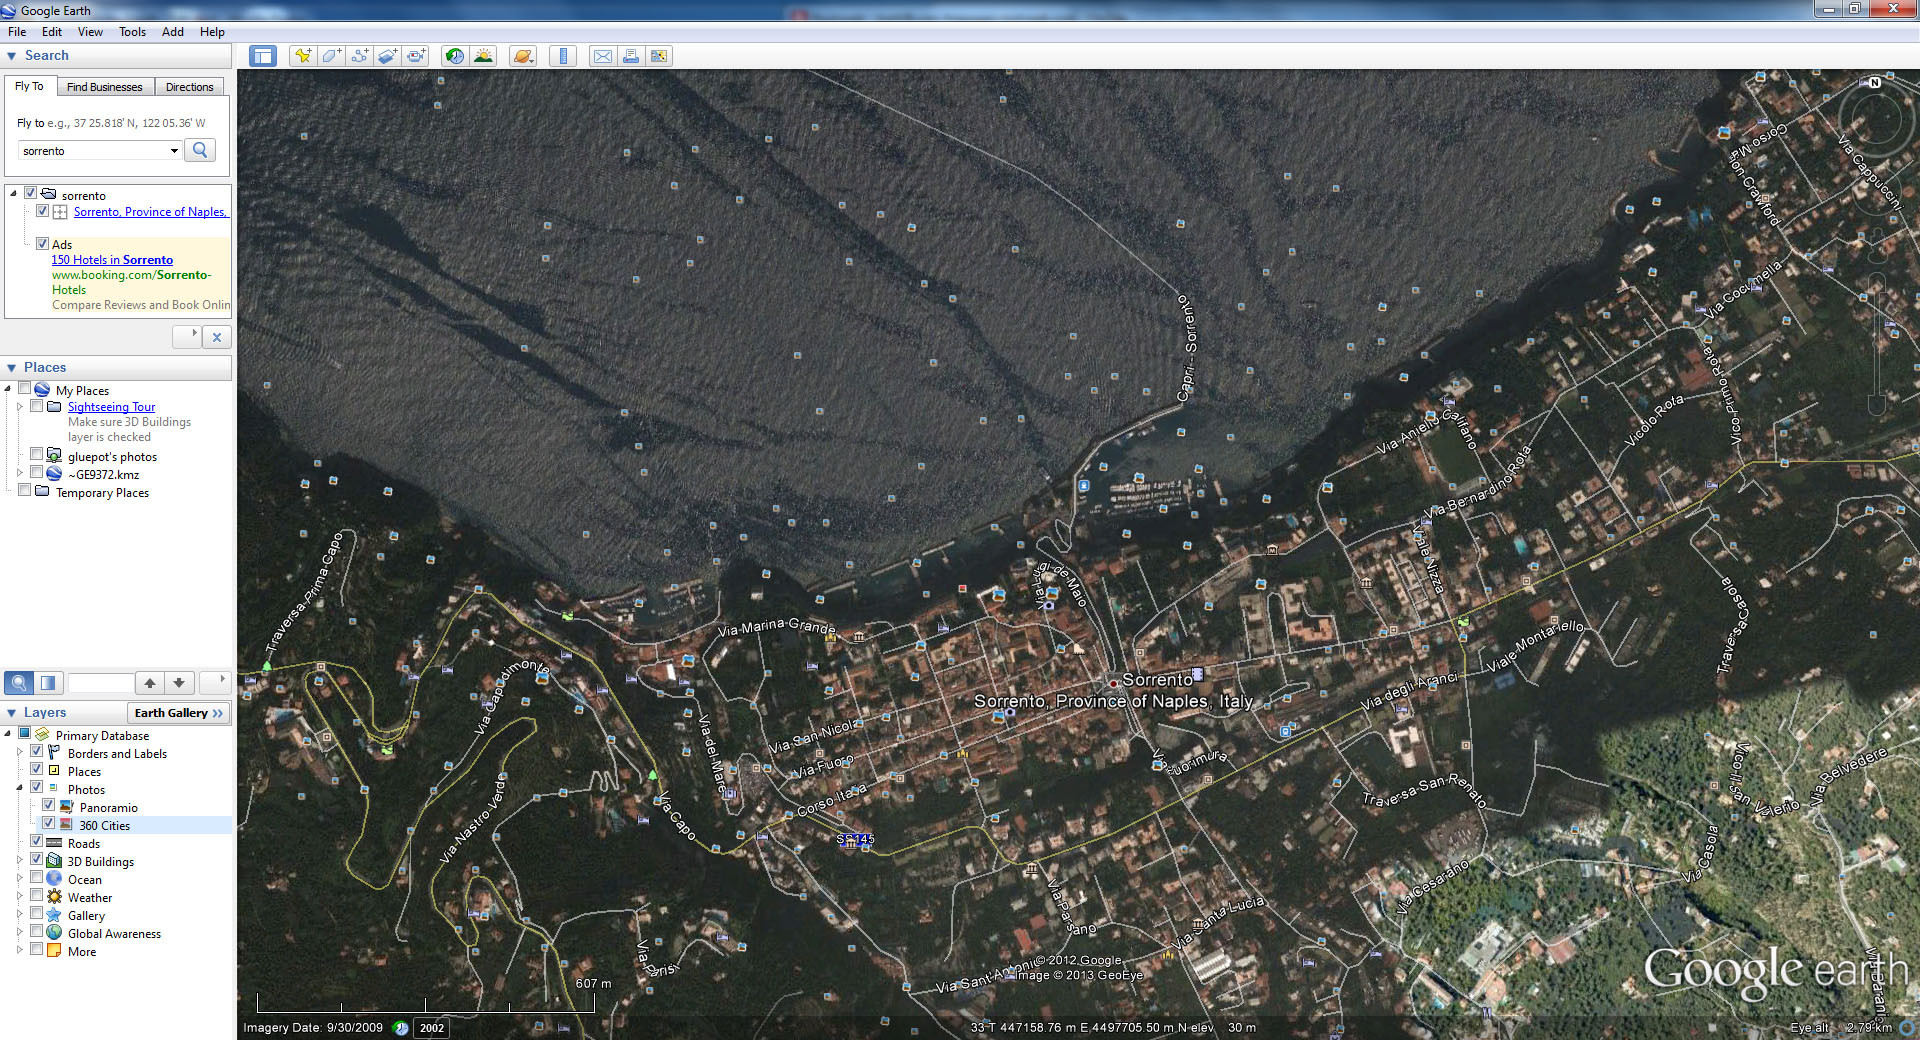 Image © and courtesy of GeoEye & Google Earth